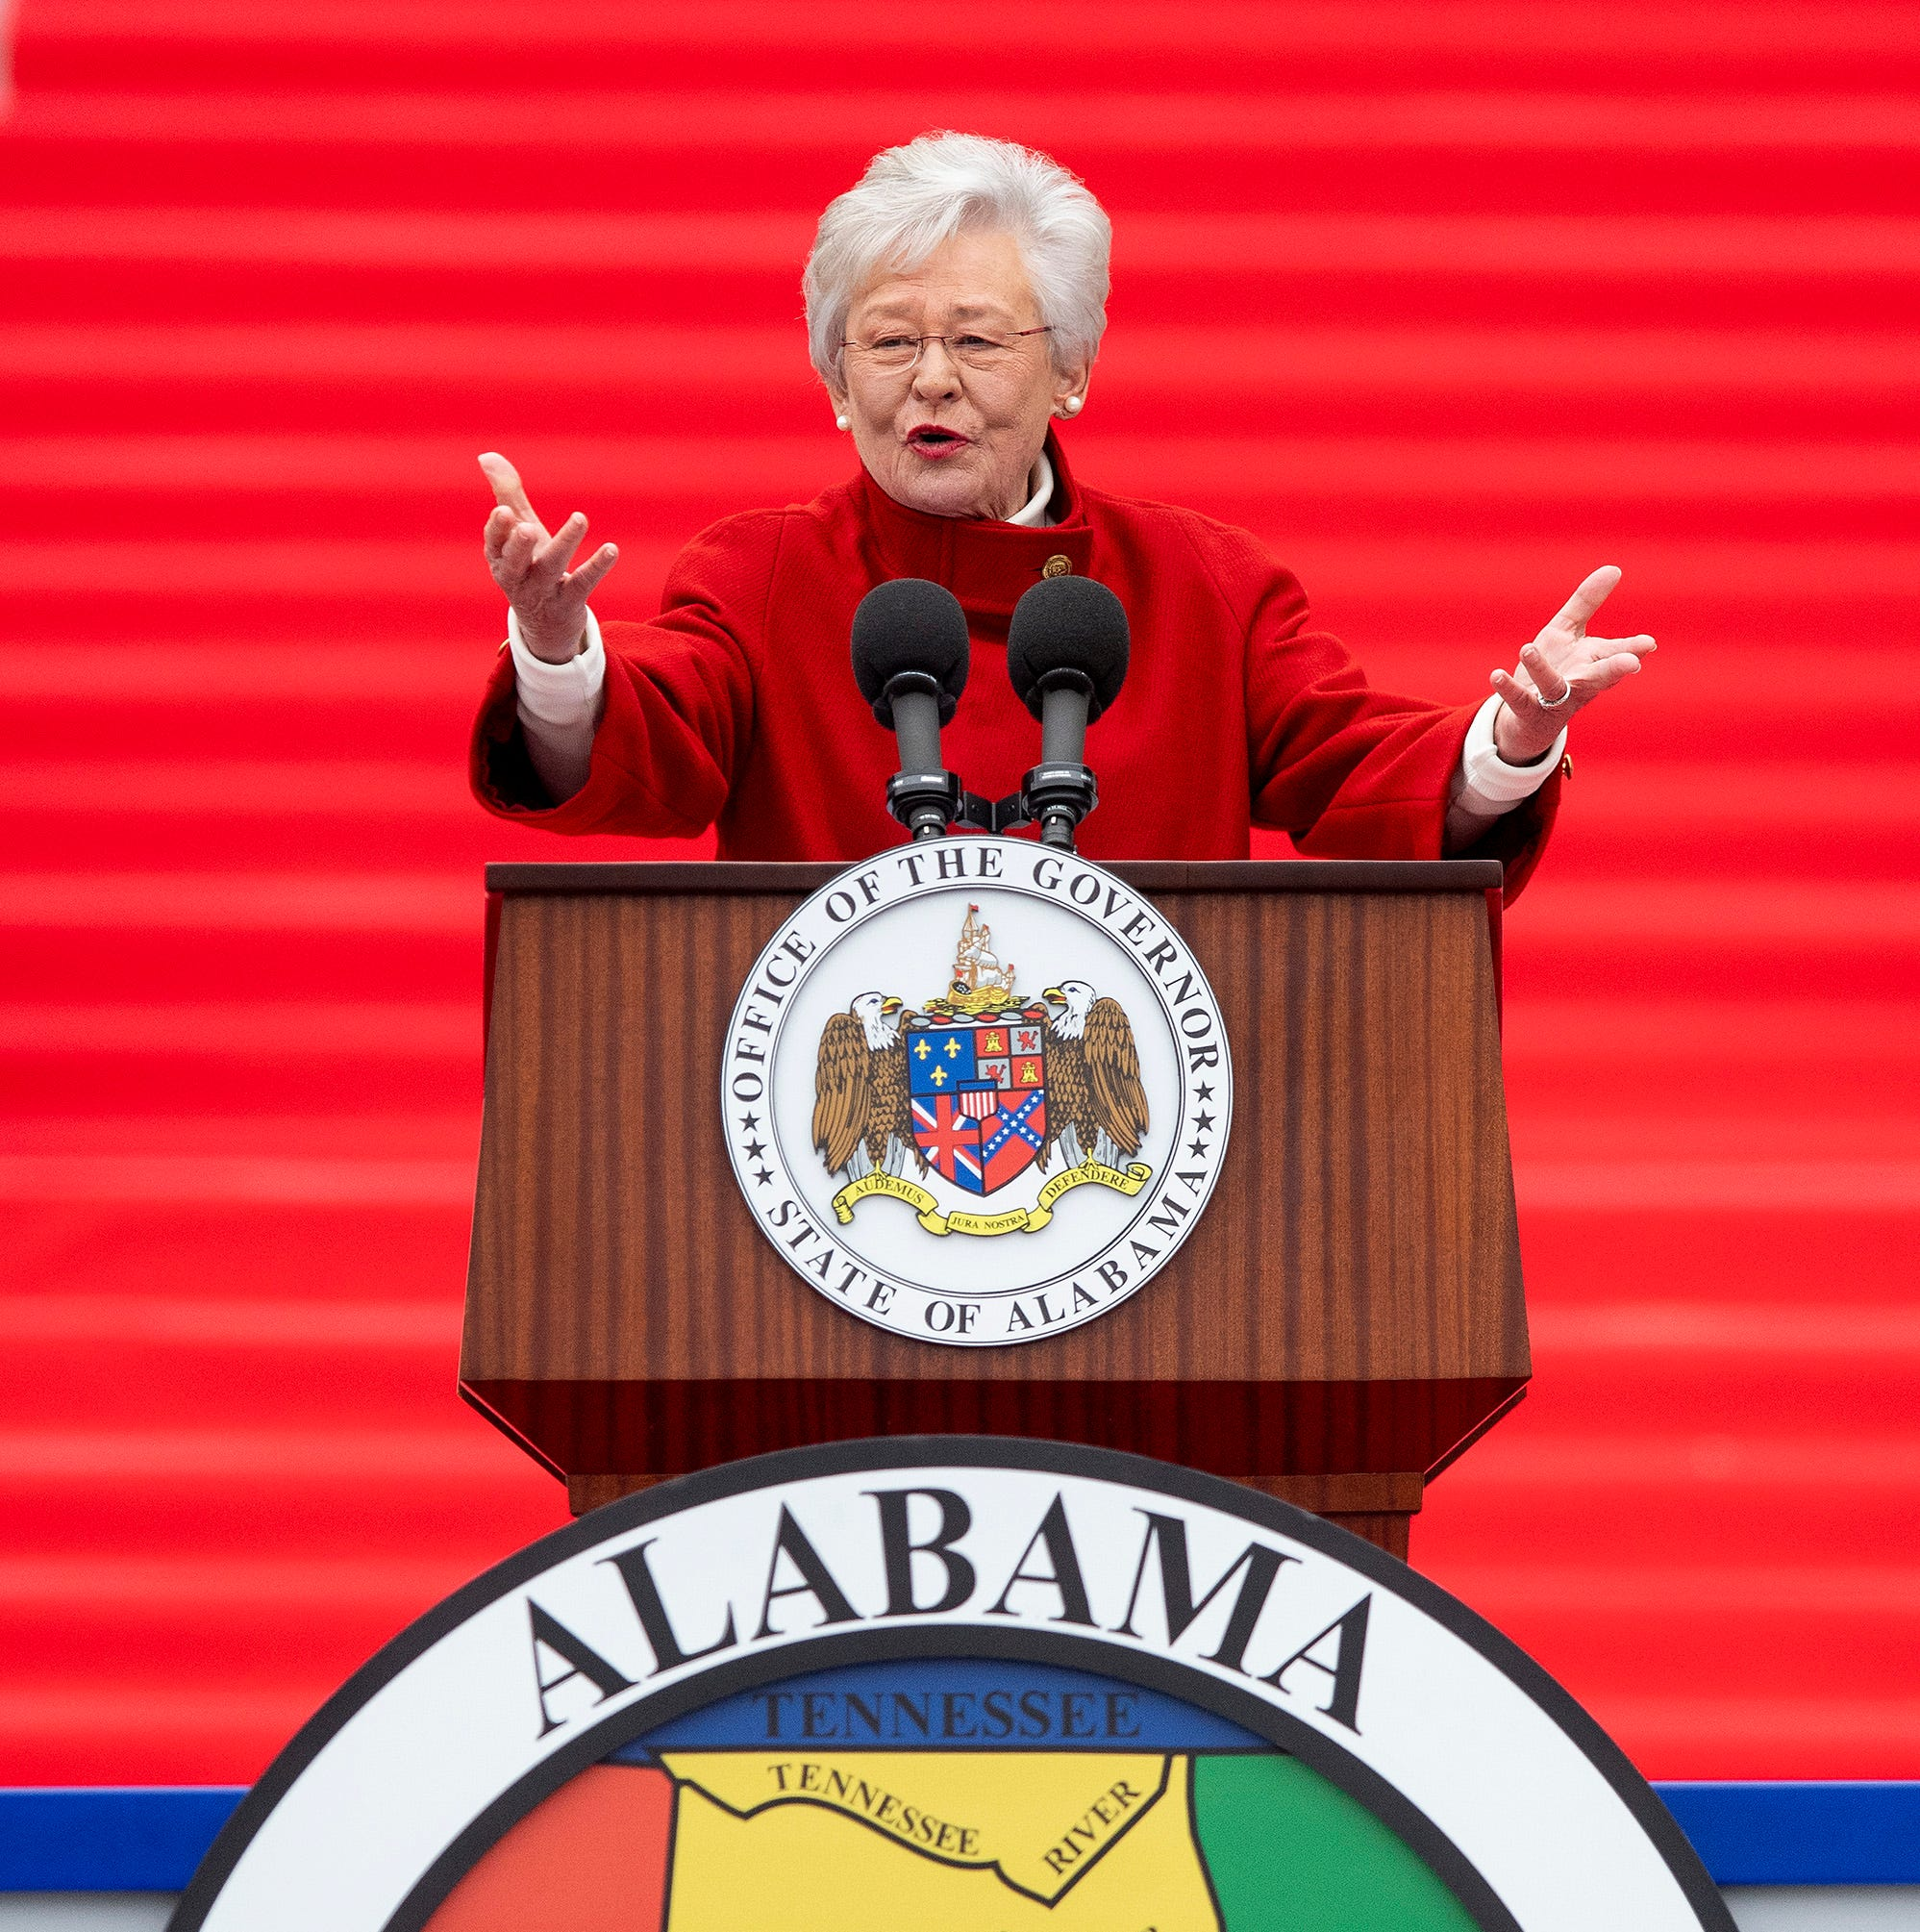 Gov. Kay Ivey calls for road improvements, prison changes in inaugural address